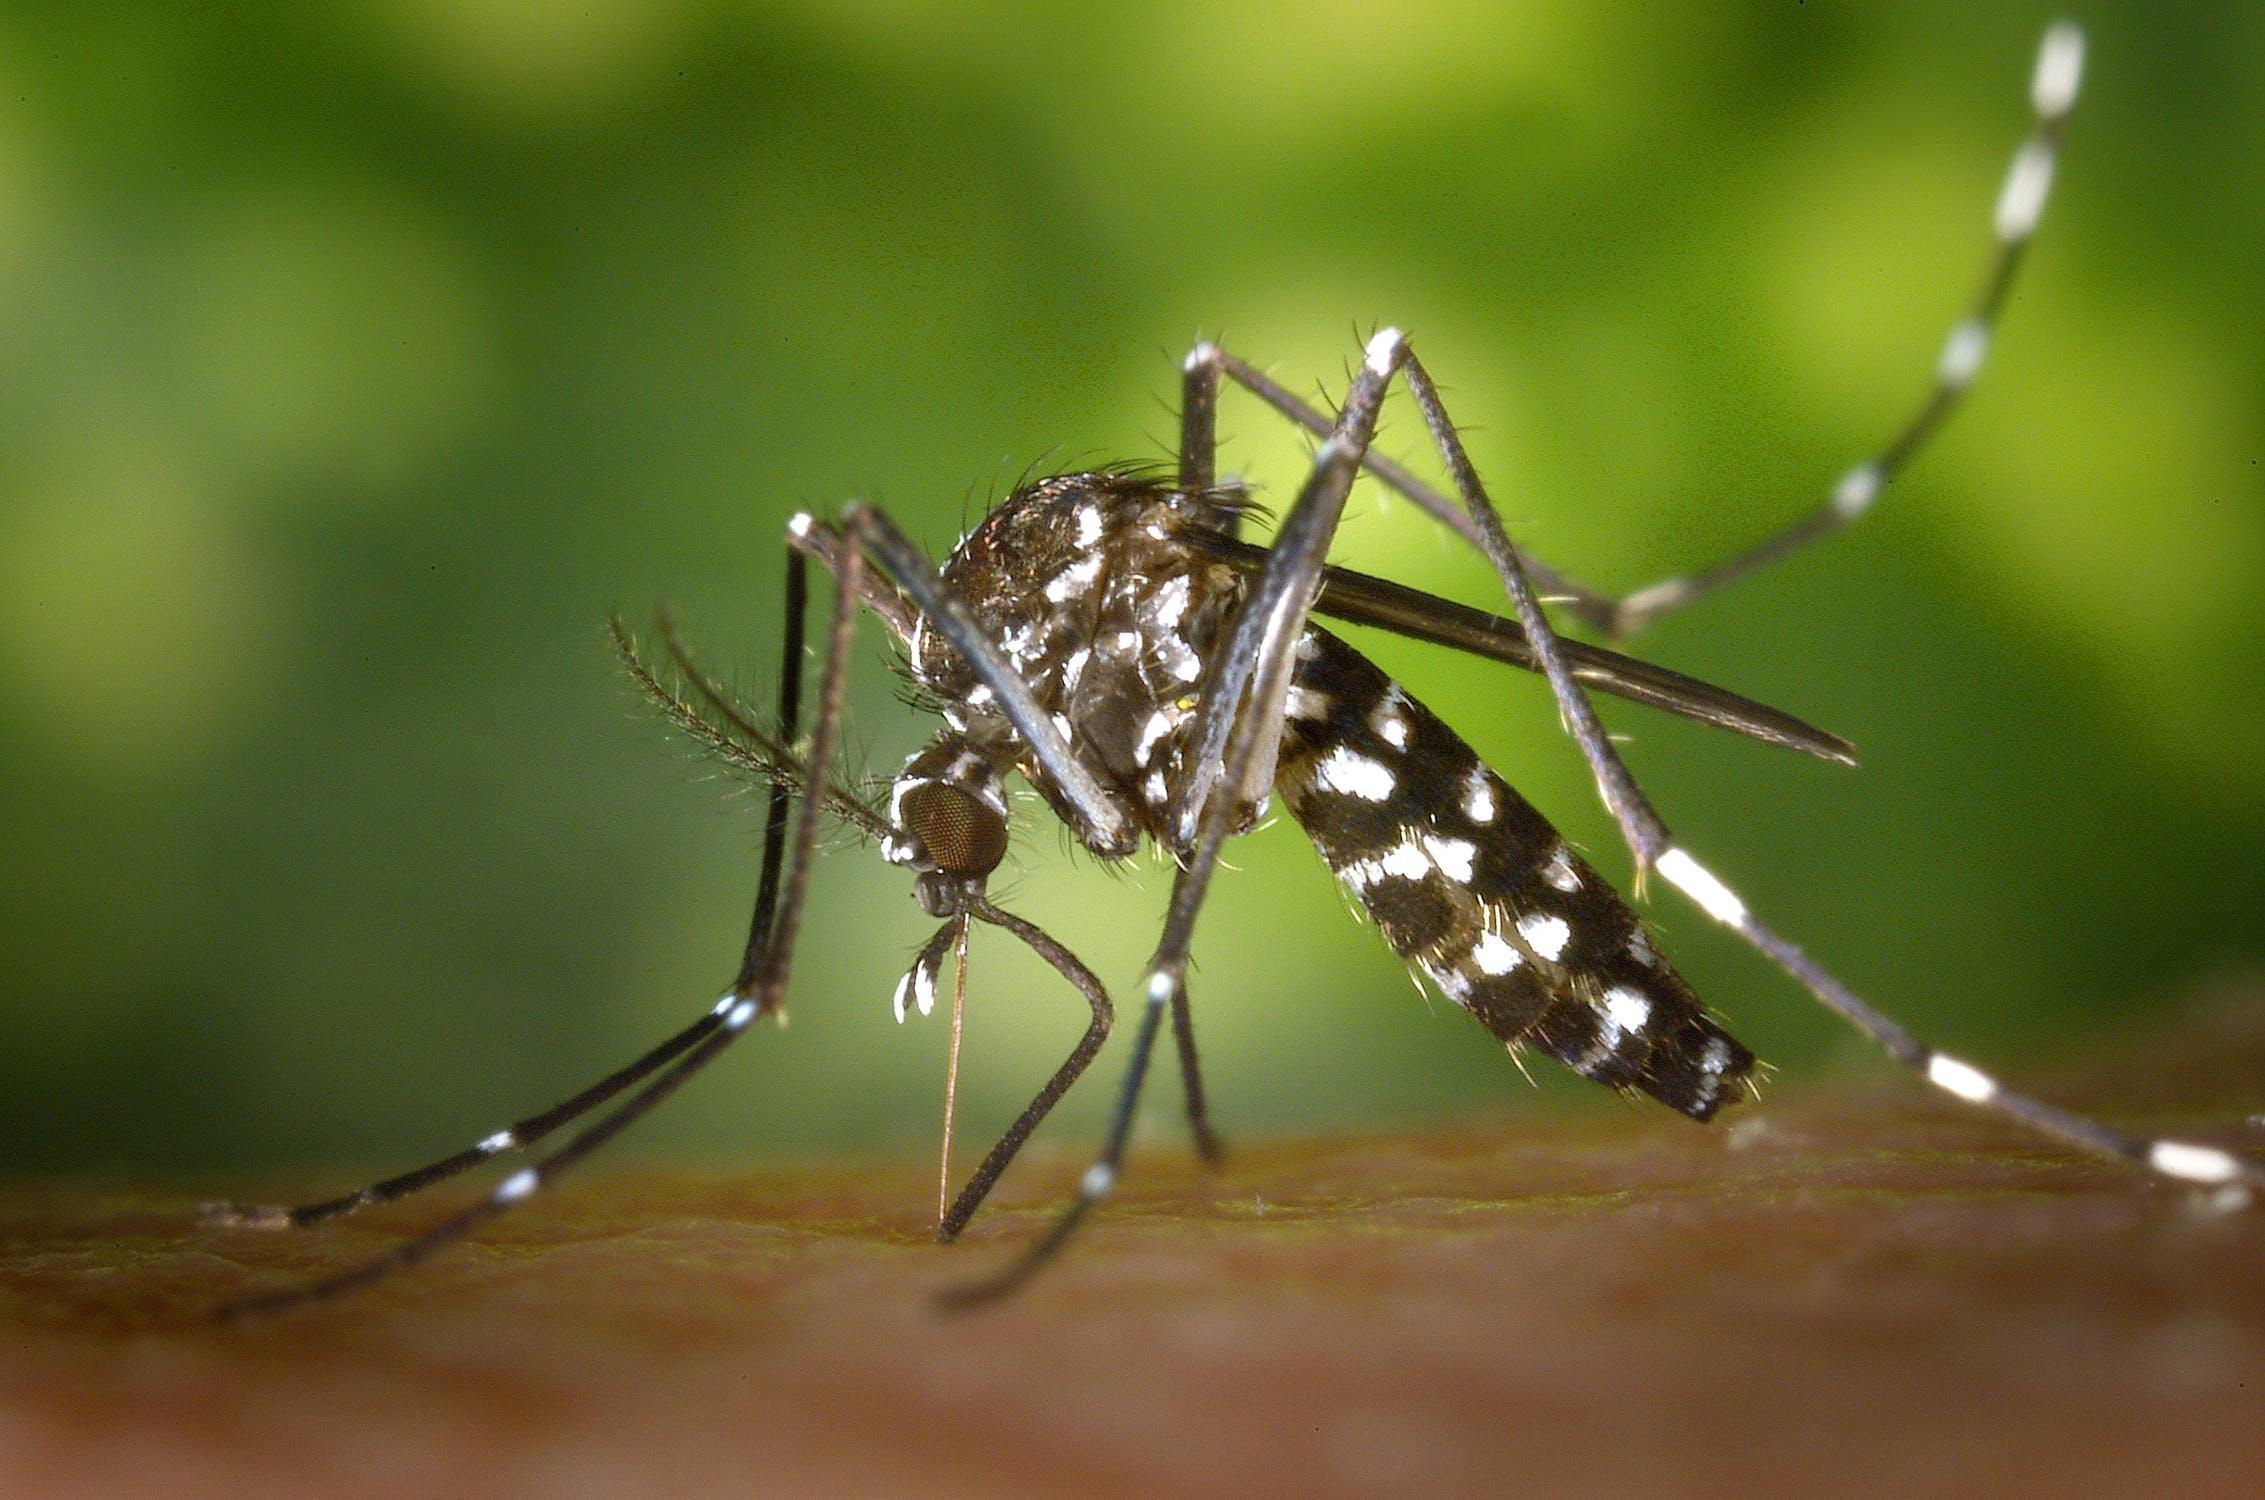 Human West Nile virus case reported in Chatham-Kent